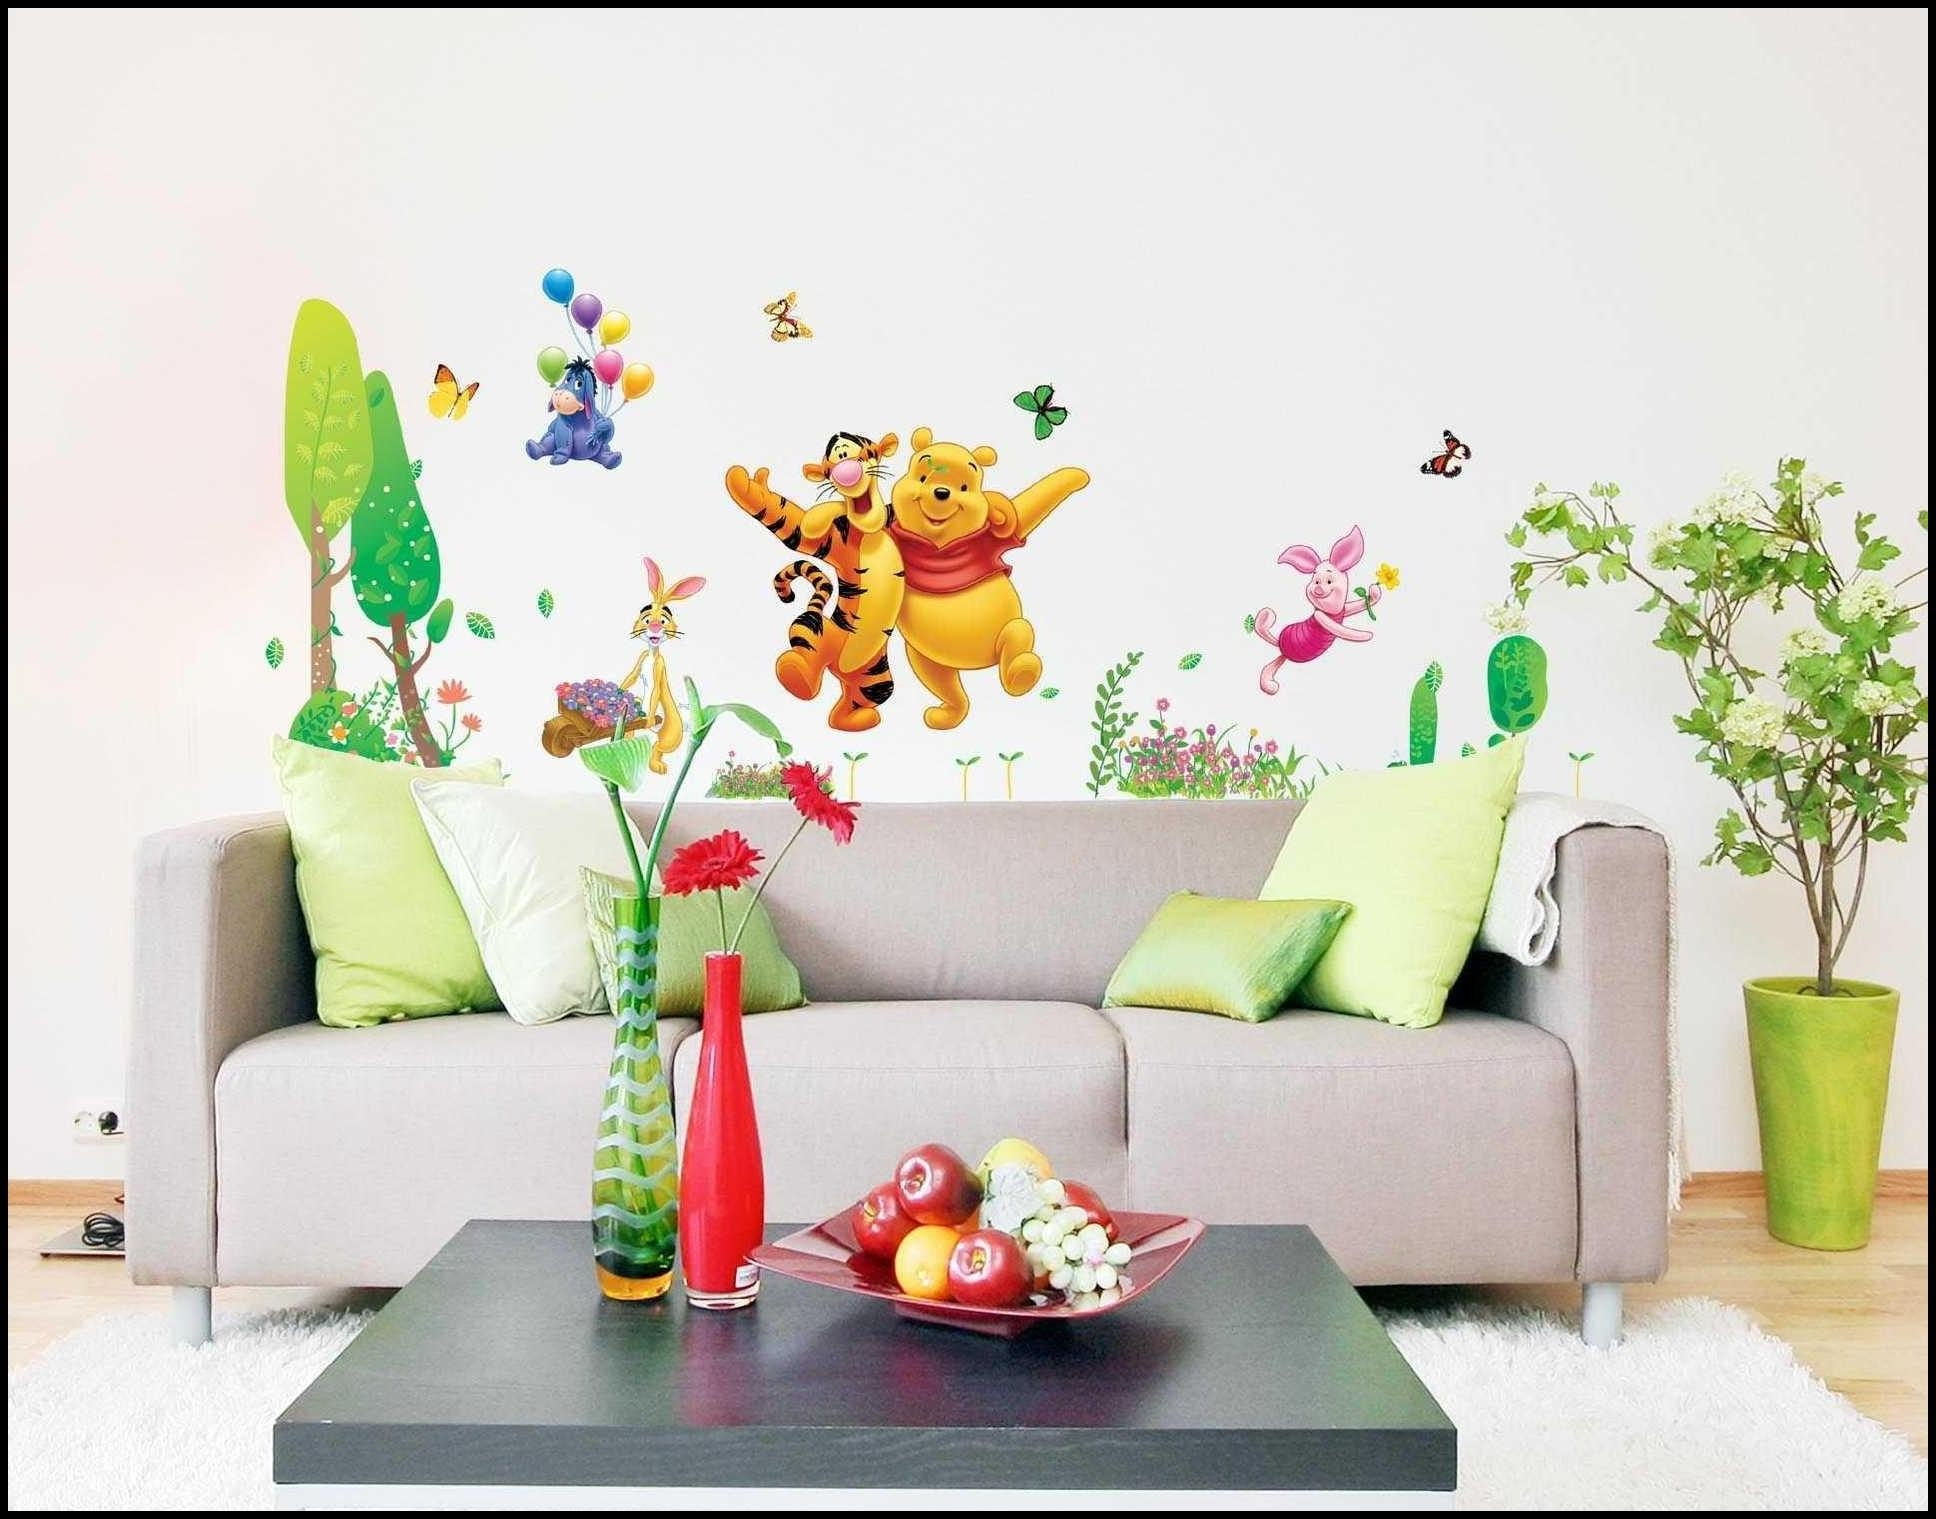 Popular Winnie The Pooh Wall Decals : Winnie The Pooh Wall Decals In Winnie The Pooh Wall Decor (Image 8 of 20)